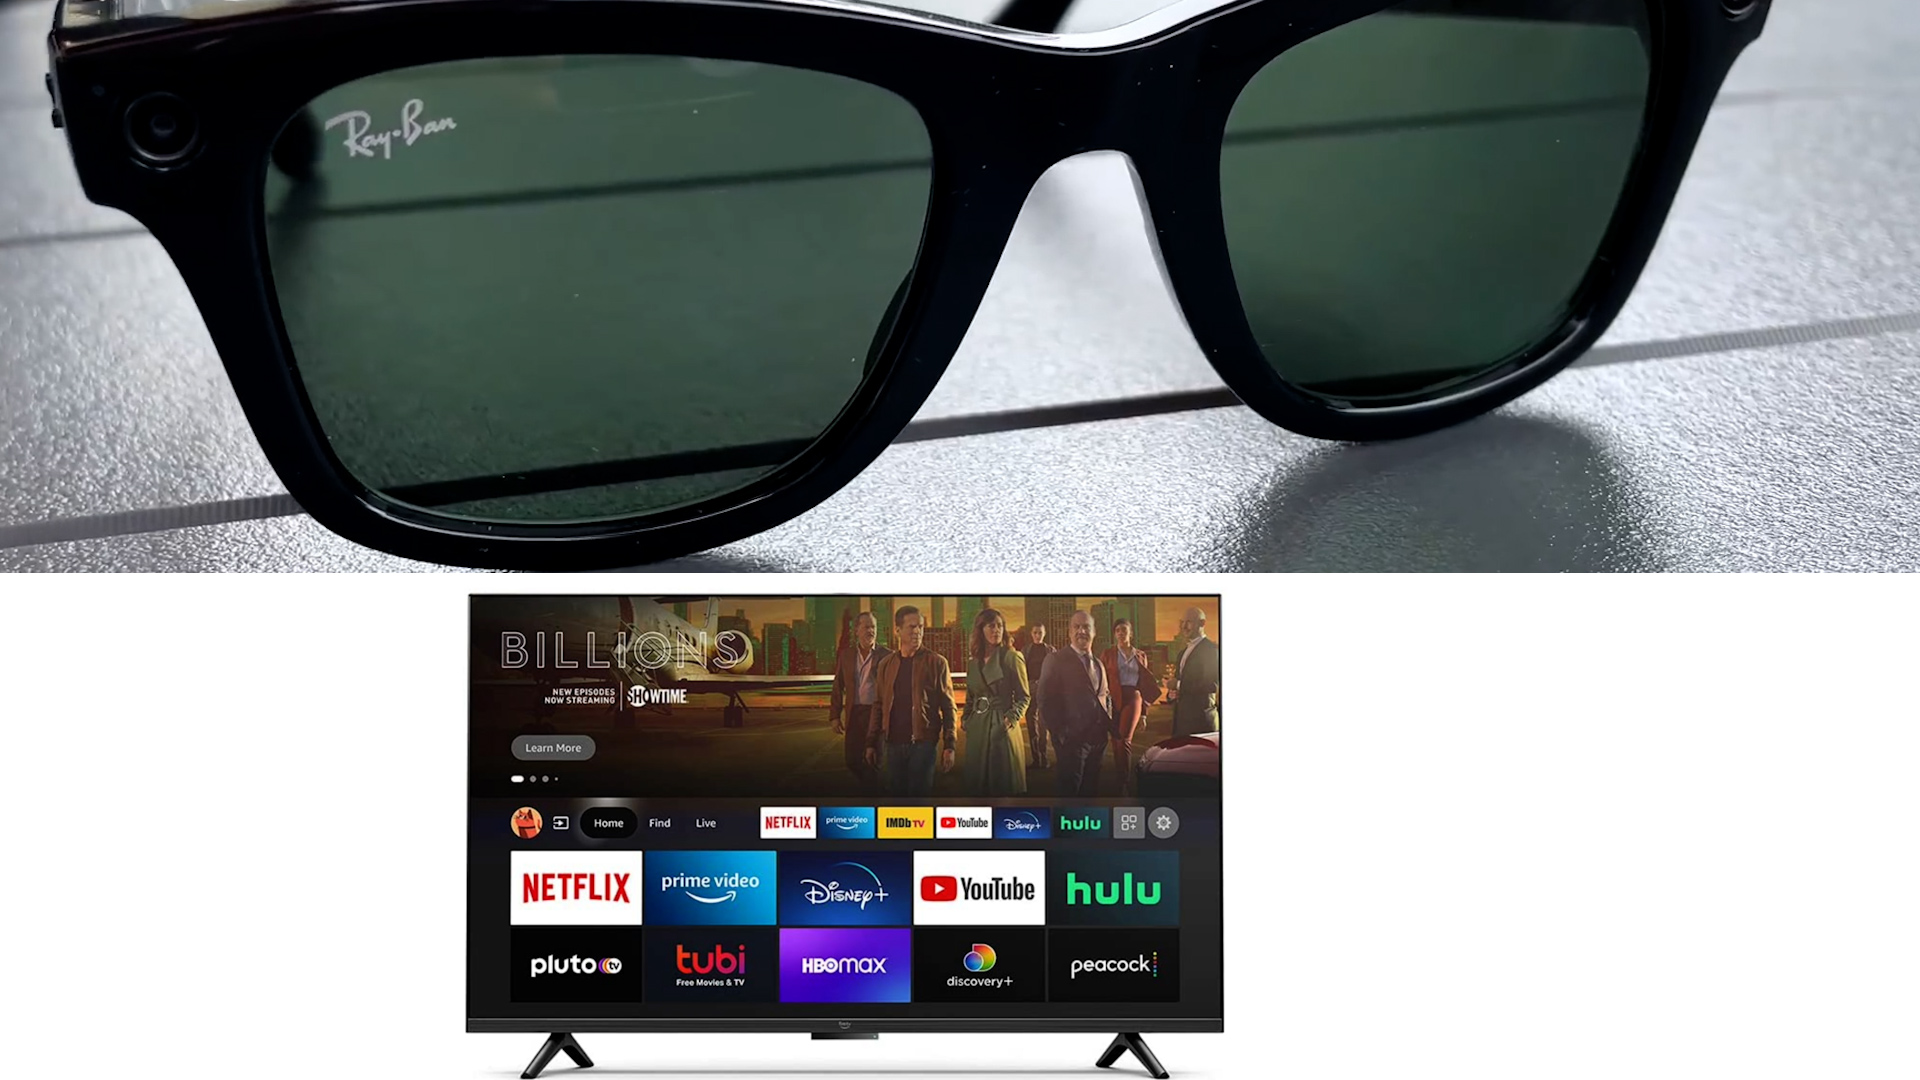 Video: Amazon-branded TVs coming soon, Facebook's smart glasses get official